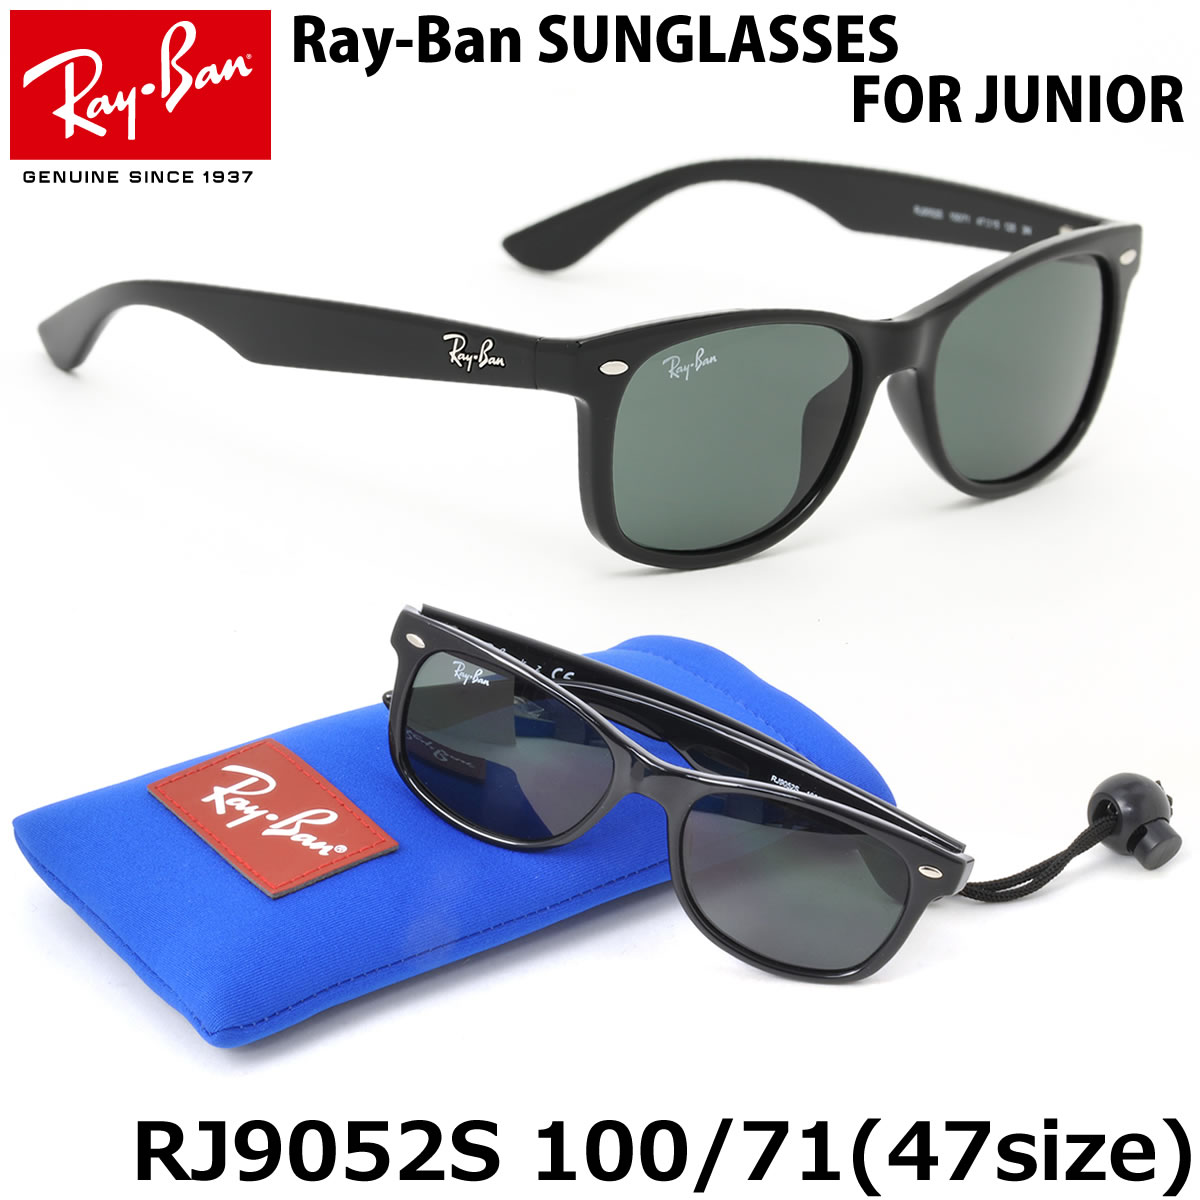 23c1e7f26 NEW WAYFARER JUNIOR RJ9052S Youth specifications come up from extreme  popularity Ray-Ban sunglasses! If I wear matching Ray-Ban sunglasses in  parent and ...